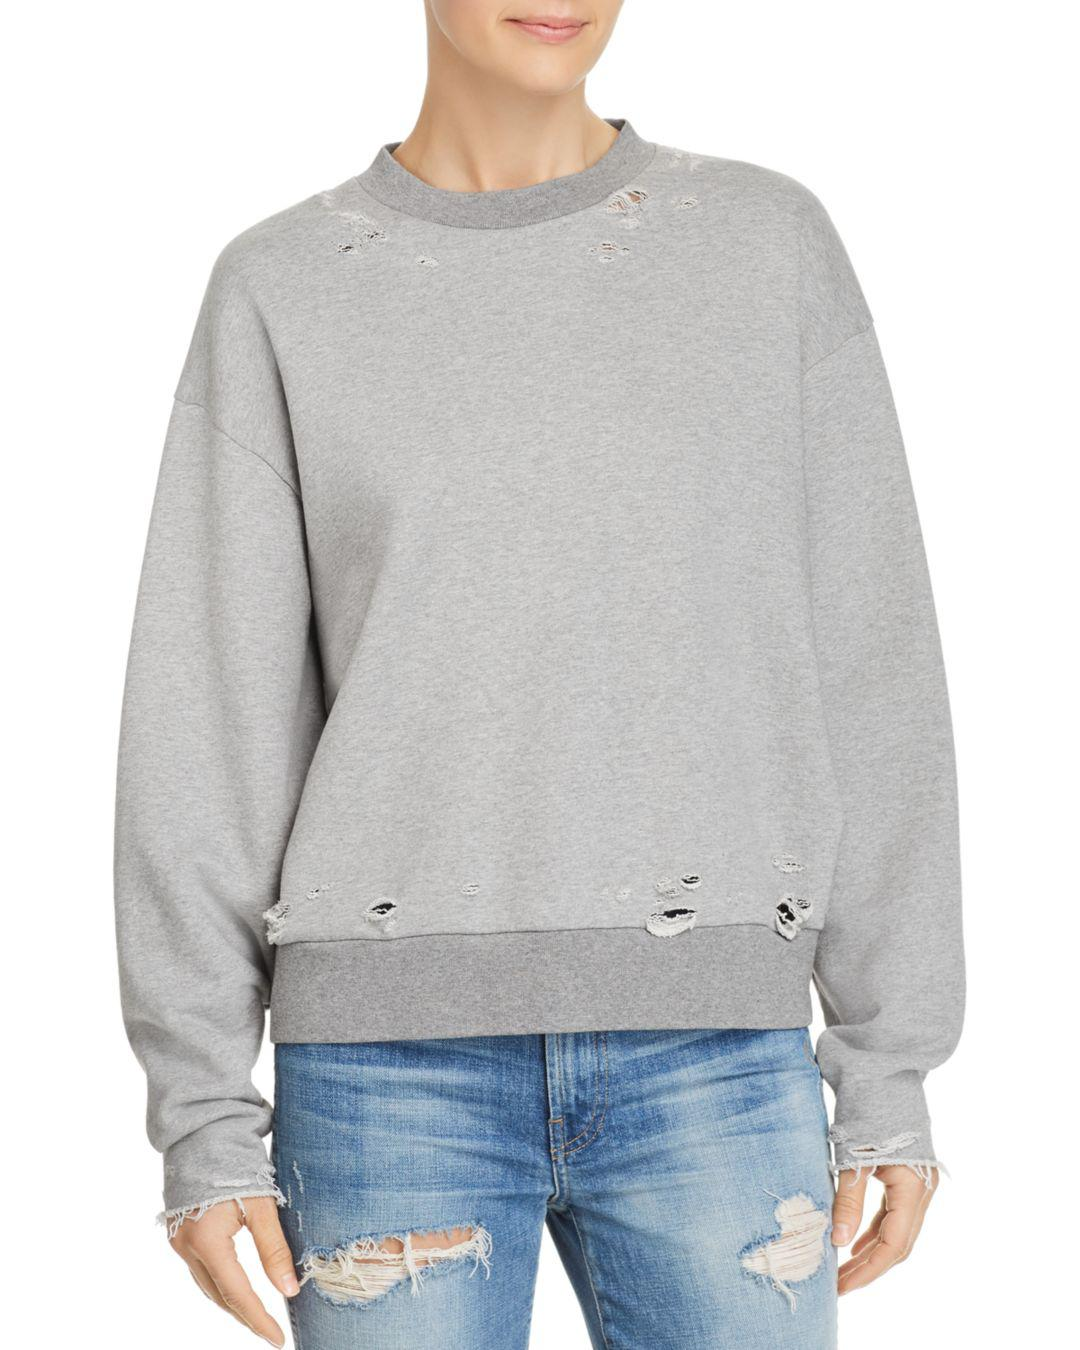 973e9029 Lyst - T By Alexander Wang Distressed French-terry Sweatshirt in Gray